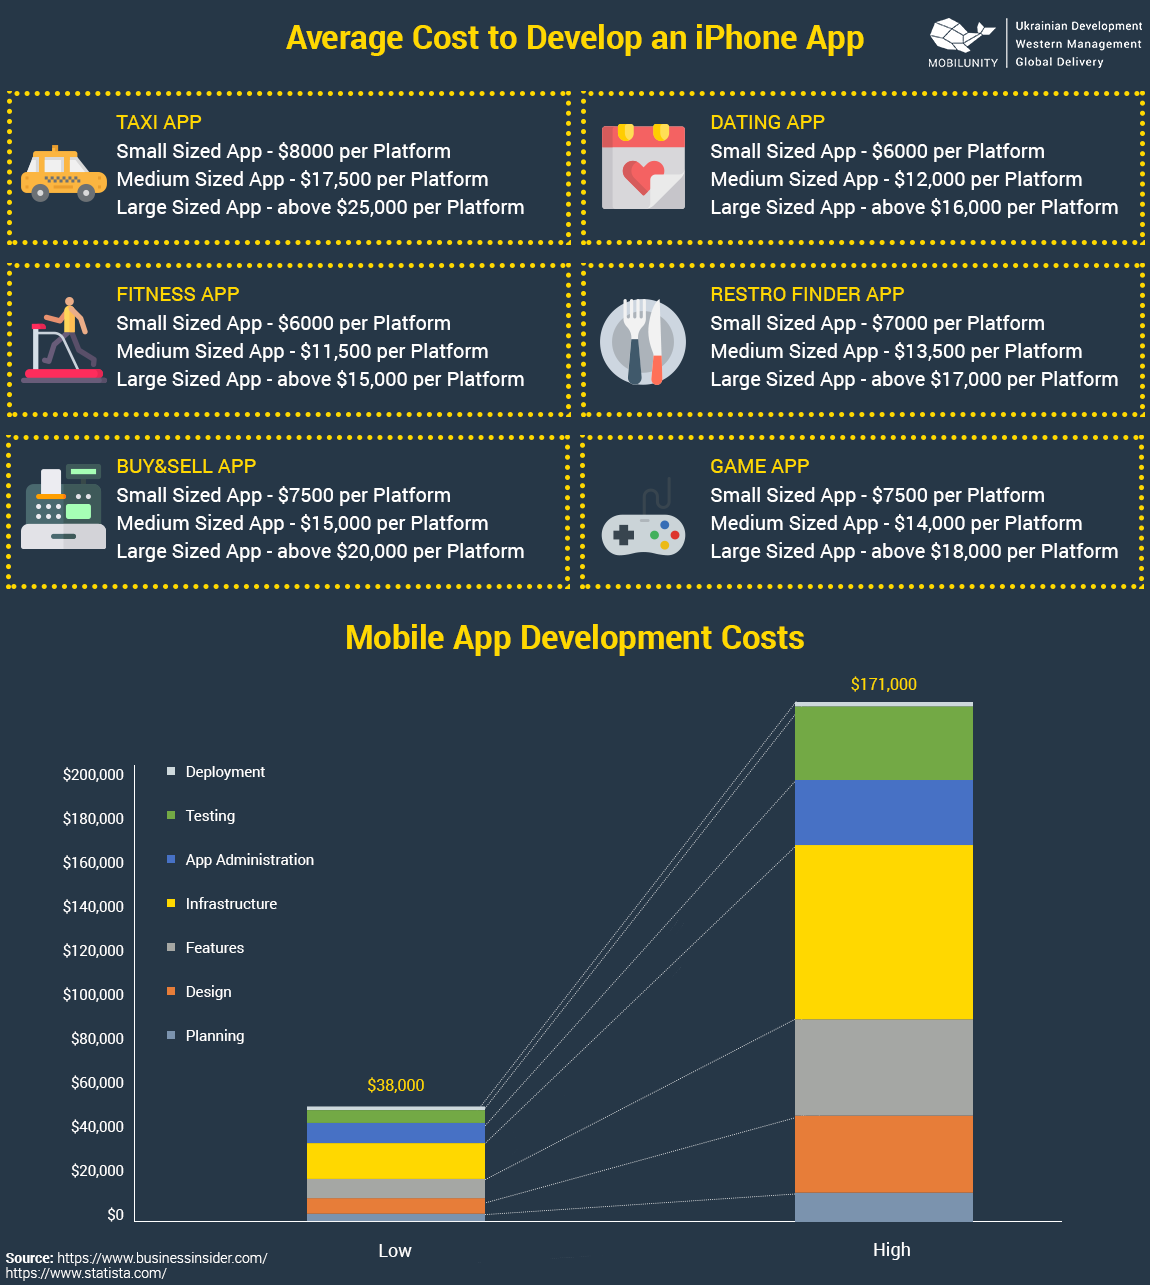 iOS App Development Cost. Average Cost to Develop an iPhone App. iOS Mobile App Development Costs.